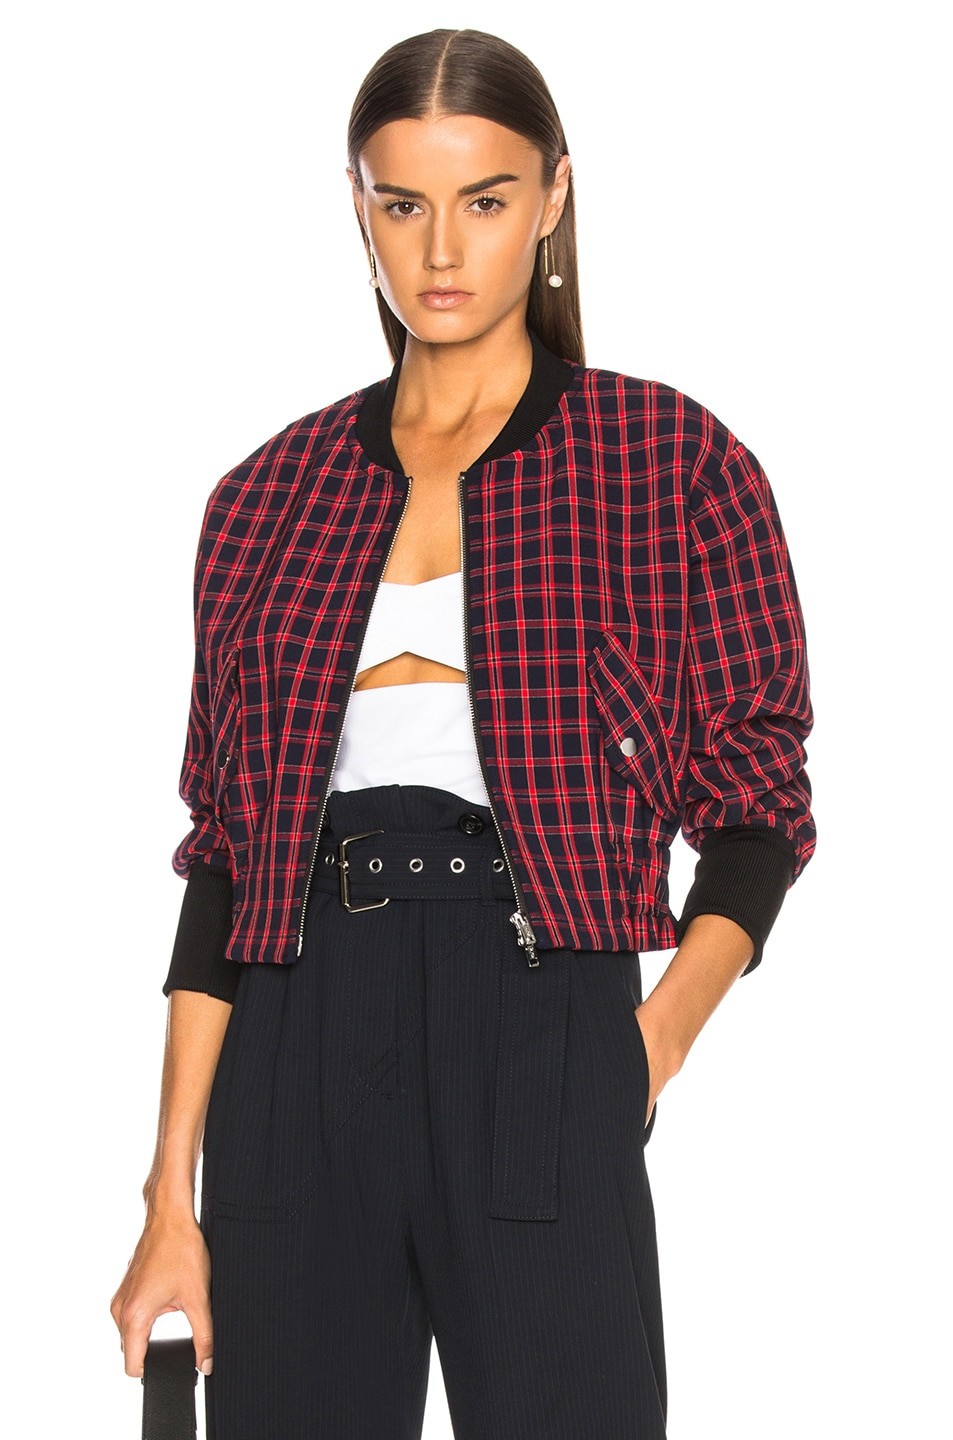 Image 1 of 3.1 phillip lim Plaid Bomber Jacket in Black & Red